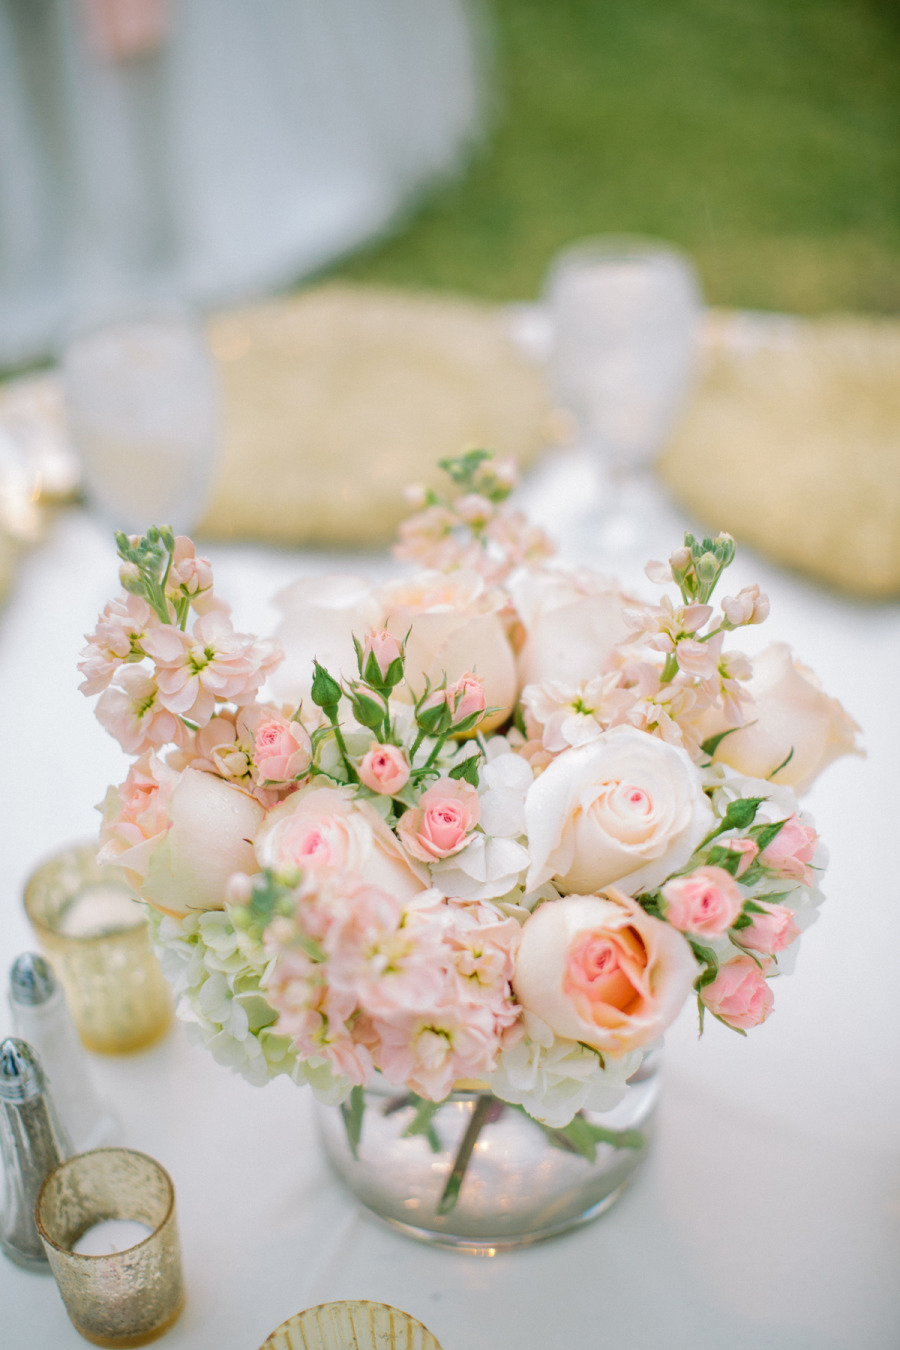 Elegant wedding centerpieces - Elegant Wedding Centerpieces